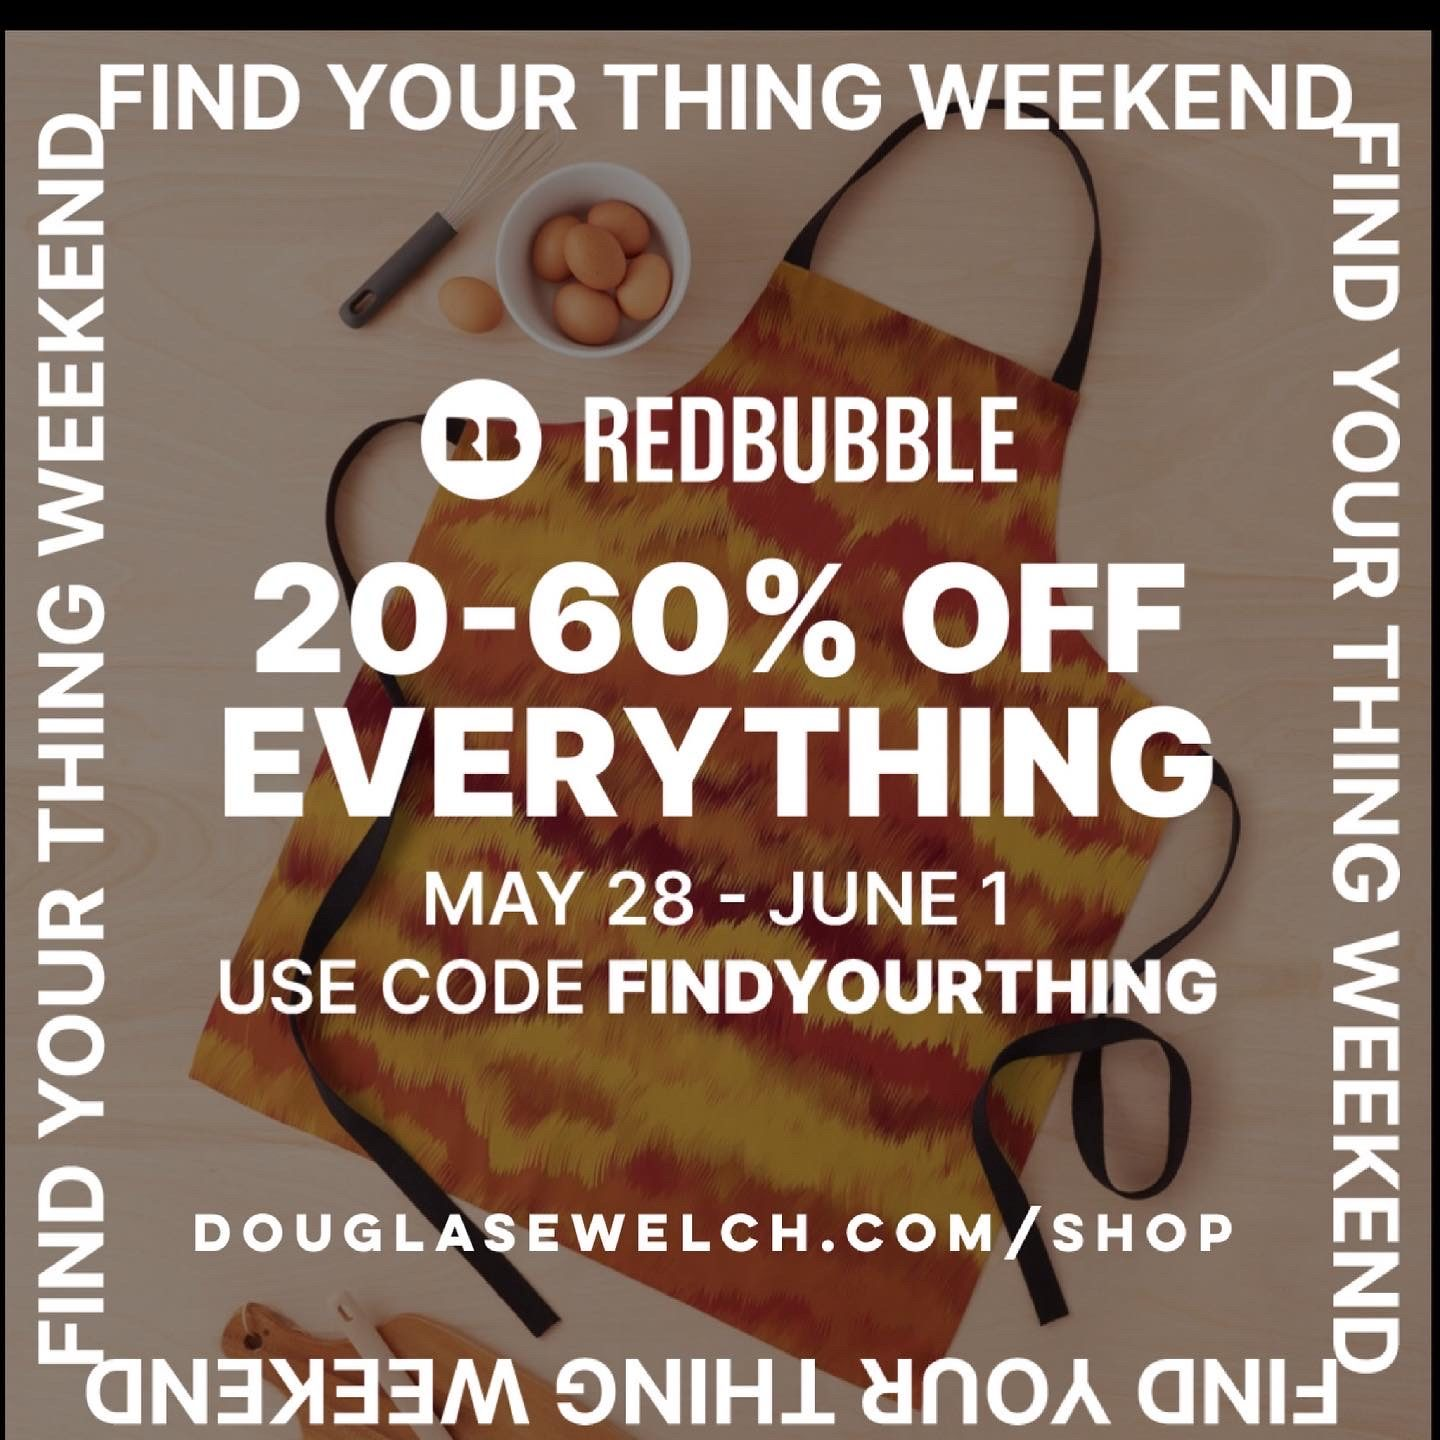 On Sale – Check out all of m my photography and vintage designs! – FIND YOUR THING WEEKEND – 20-60% off everything  – May 28 – June 1